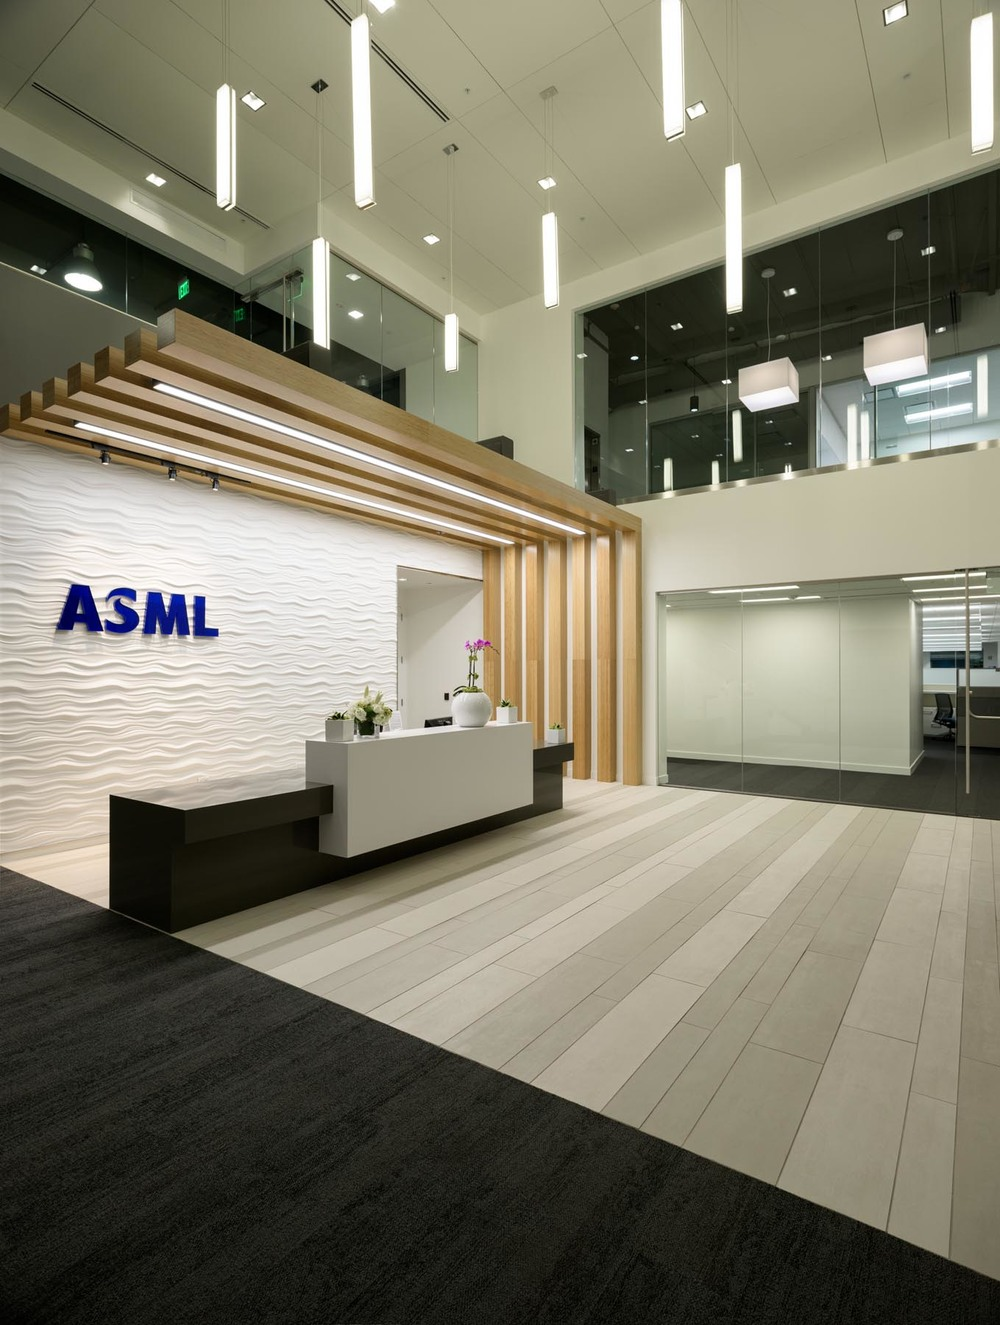 San Jose Architecture Photography at ASML